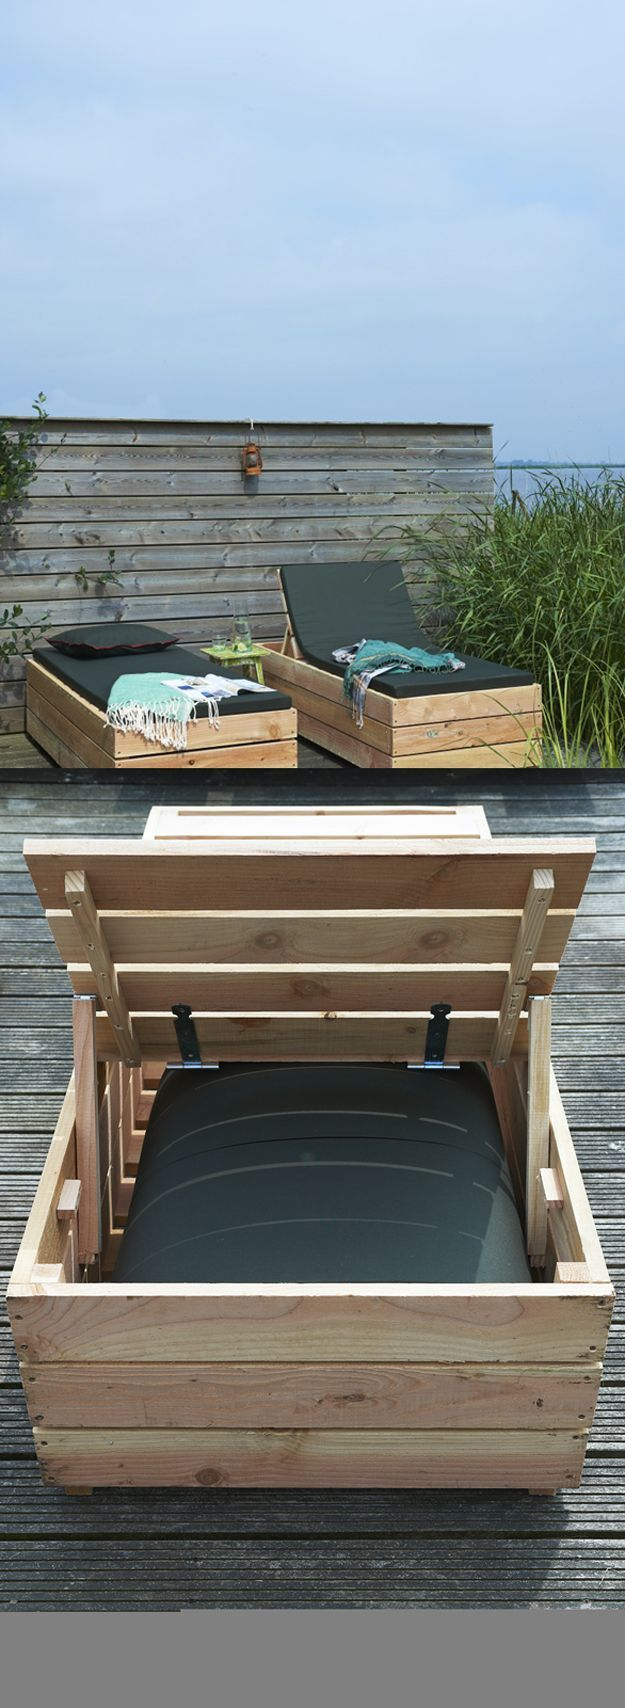 Diy outdoor pallet furniture projects diy projects do it yourself projects and crafts